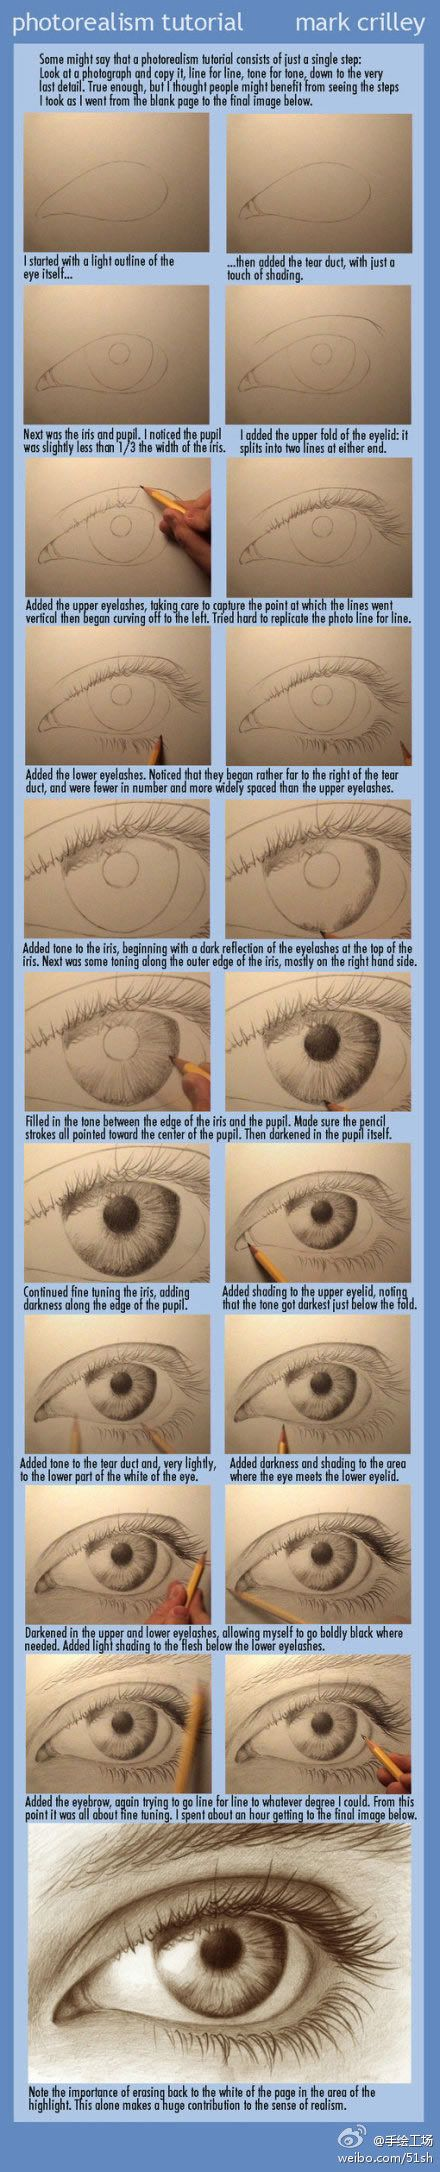 I spent a lot of time in high school art class working on perfecting human eyes. So much more fun than having someone tell you how to do it, but this is a handy refresher. For Emily.